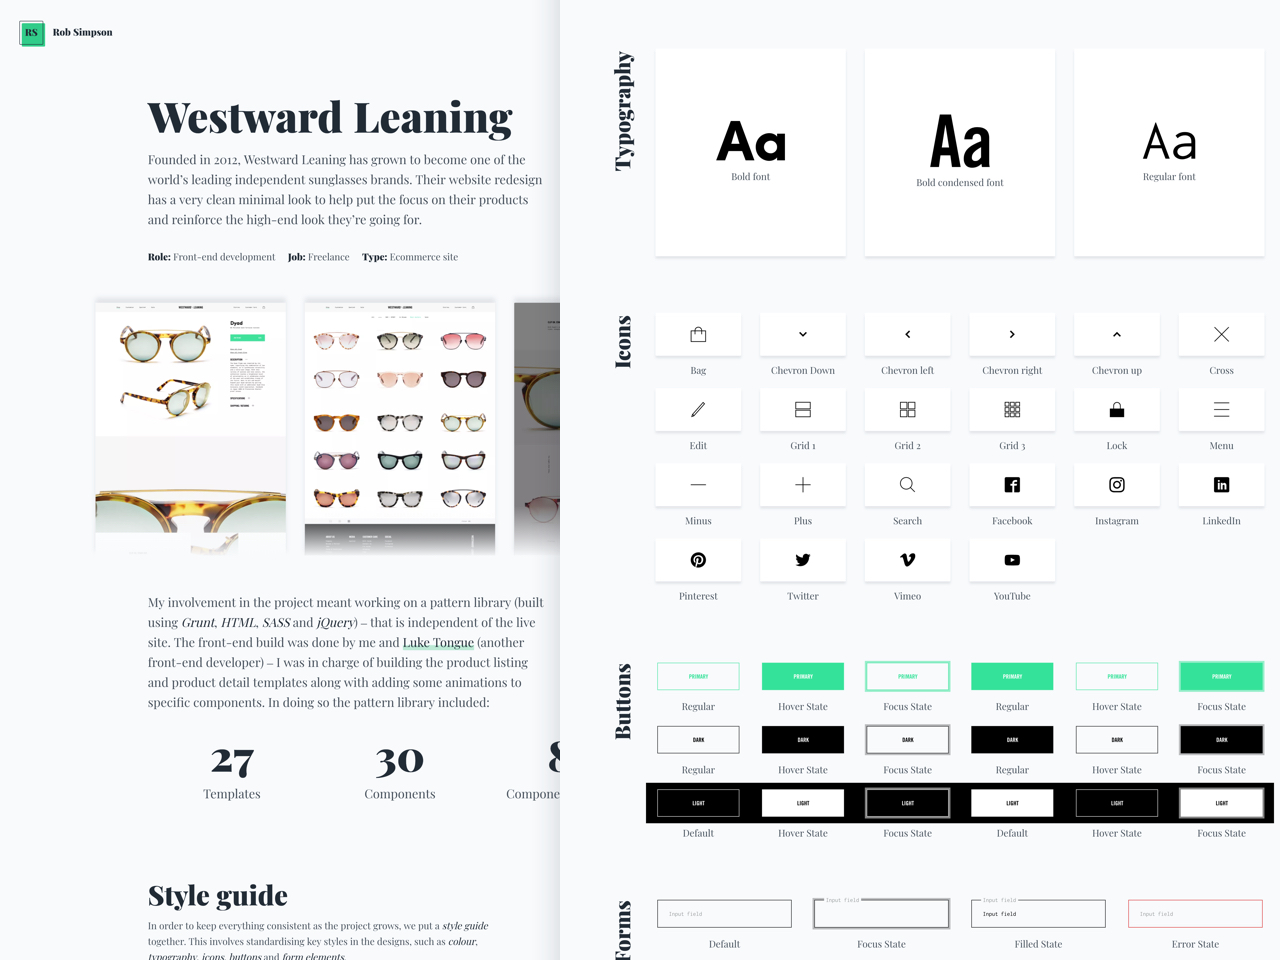 Old website Westward Leaning case study